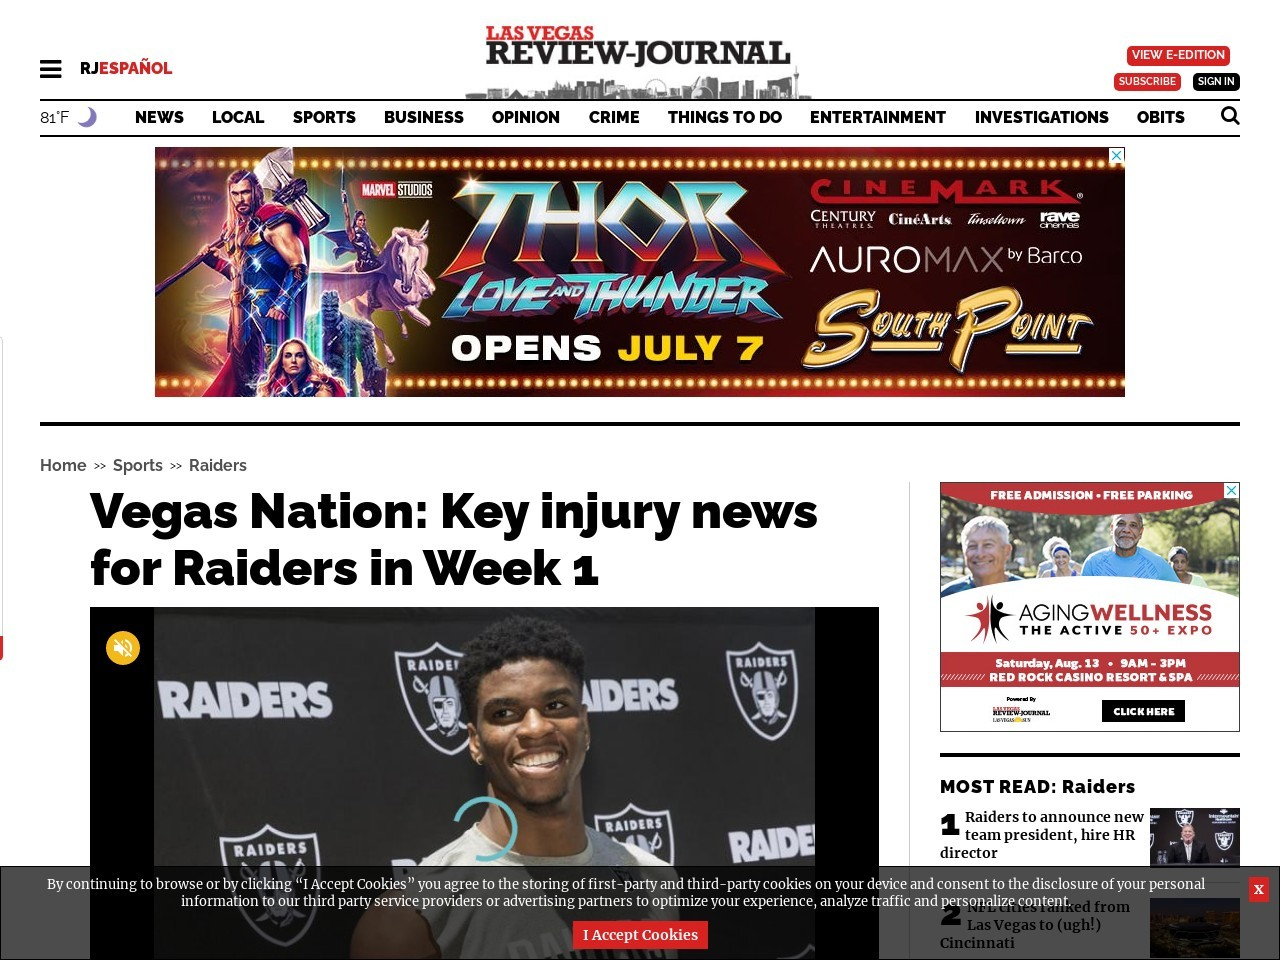 Vegas Nation: Key injury news for Raiders in Week 1